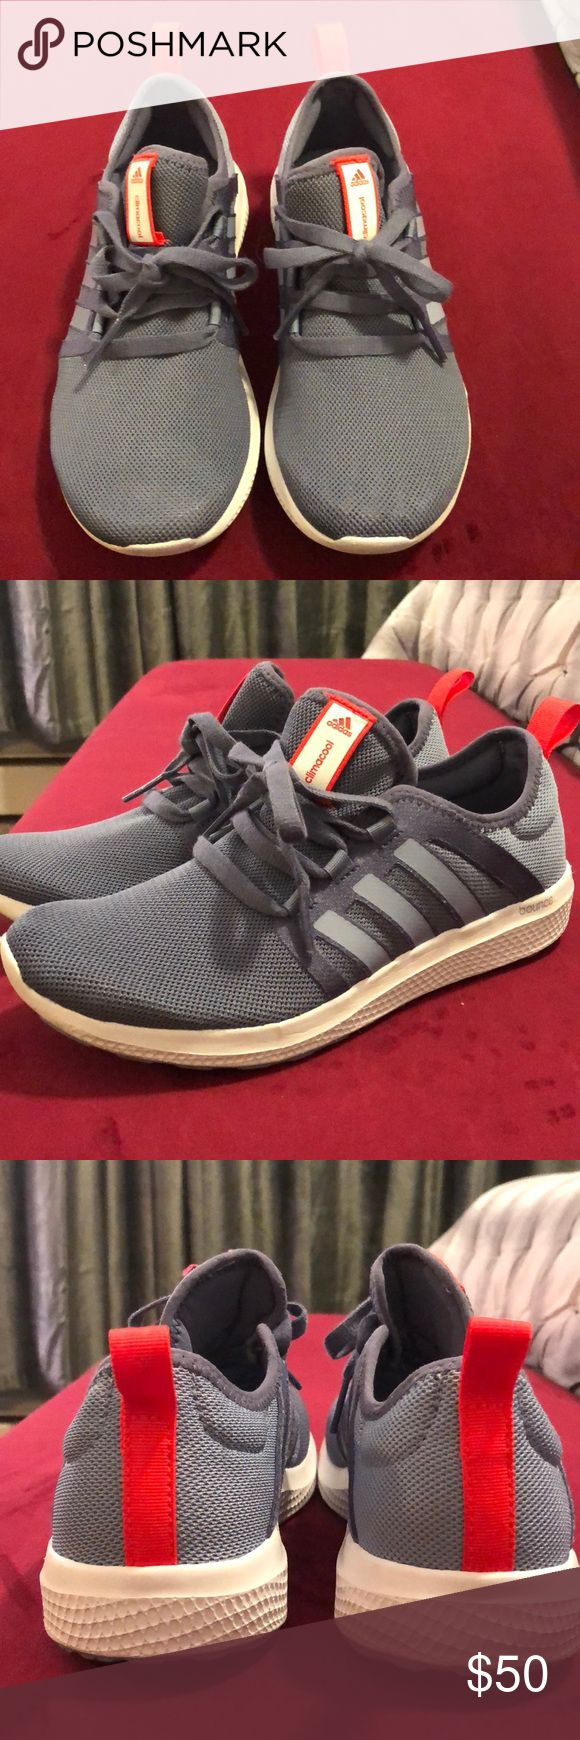 Adidas ClimaCool Fresh Bounce running trainers Super cute and lightweight sneakers from Adidas! Pretty light blue with bright orange accents. Worn only twice, in very good shape. I usually wear a size 7 and these 6.5 fit me just right. Adidas usually run a little big. adidas Shoes Athletic Shoes